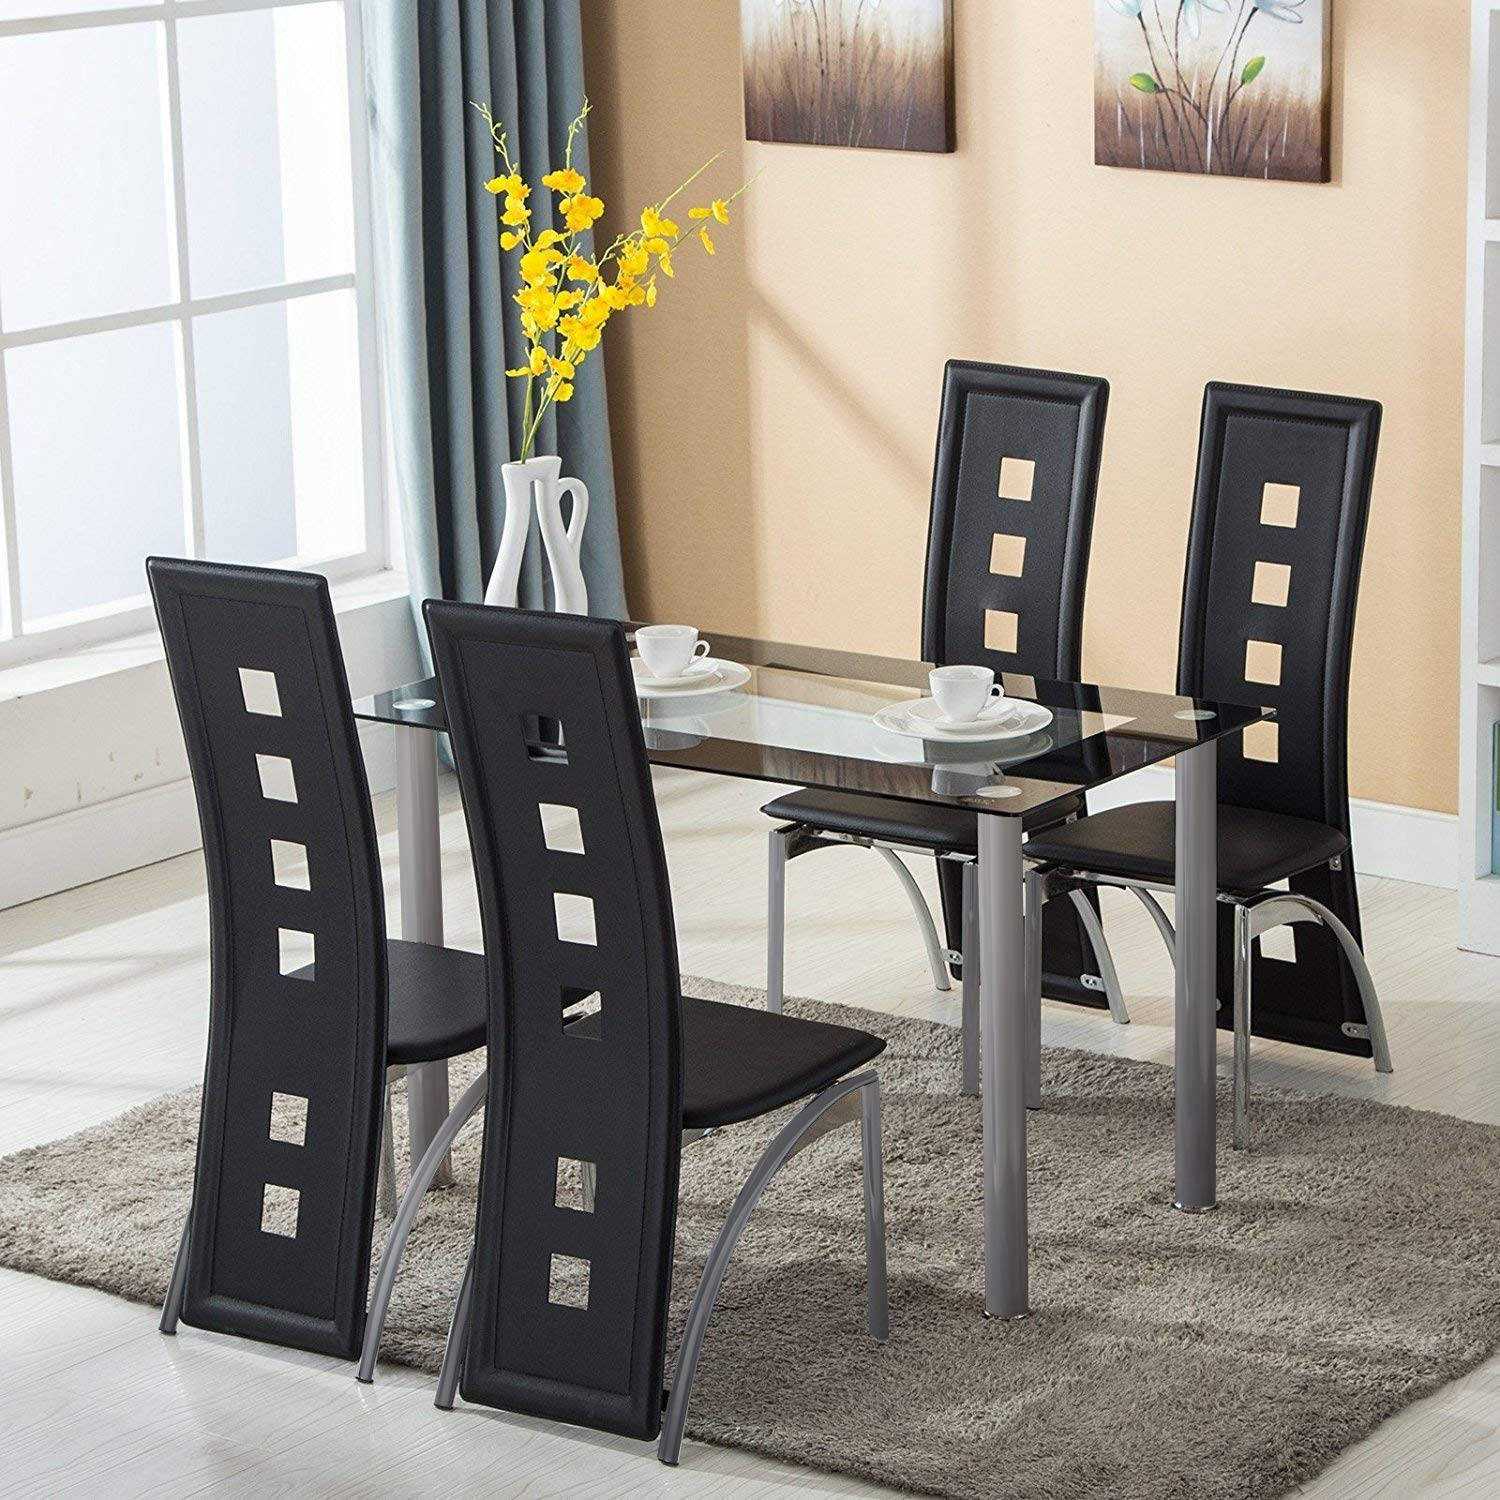 Ktaxon 5 Piece Glass Dining Table Set With 4 Faux Leather Chairs